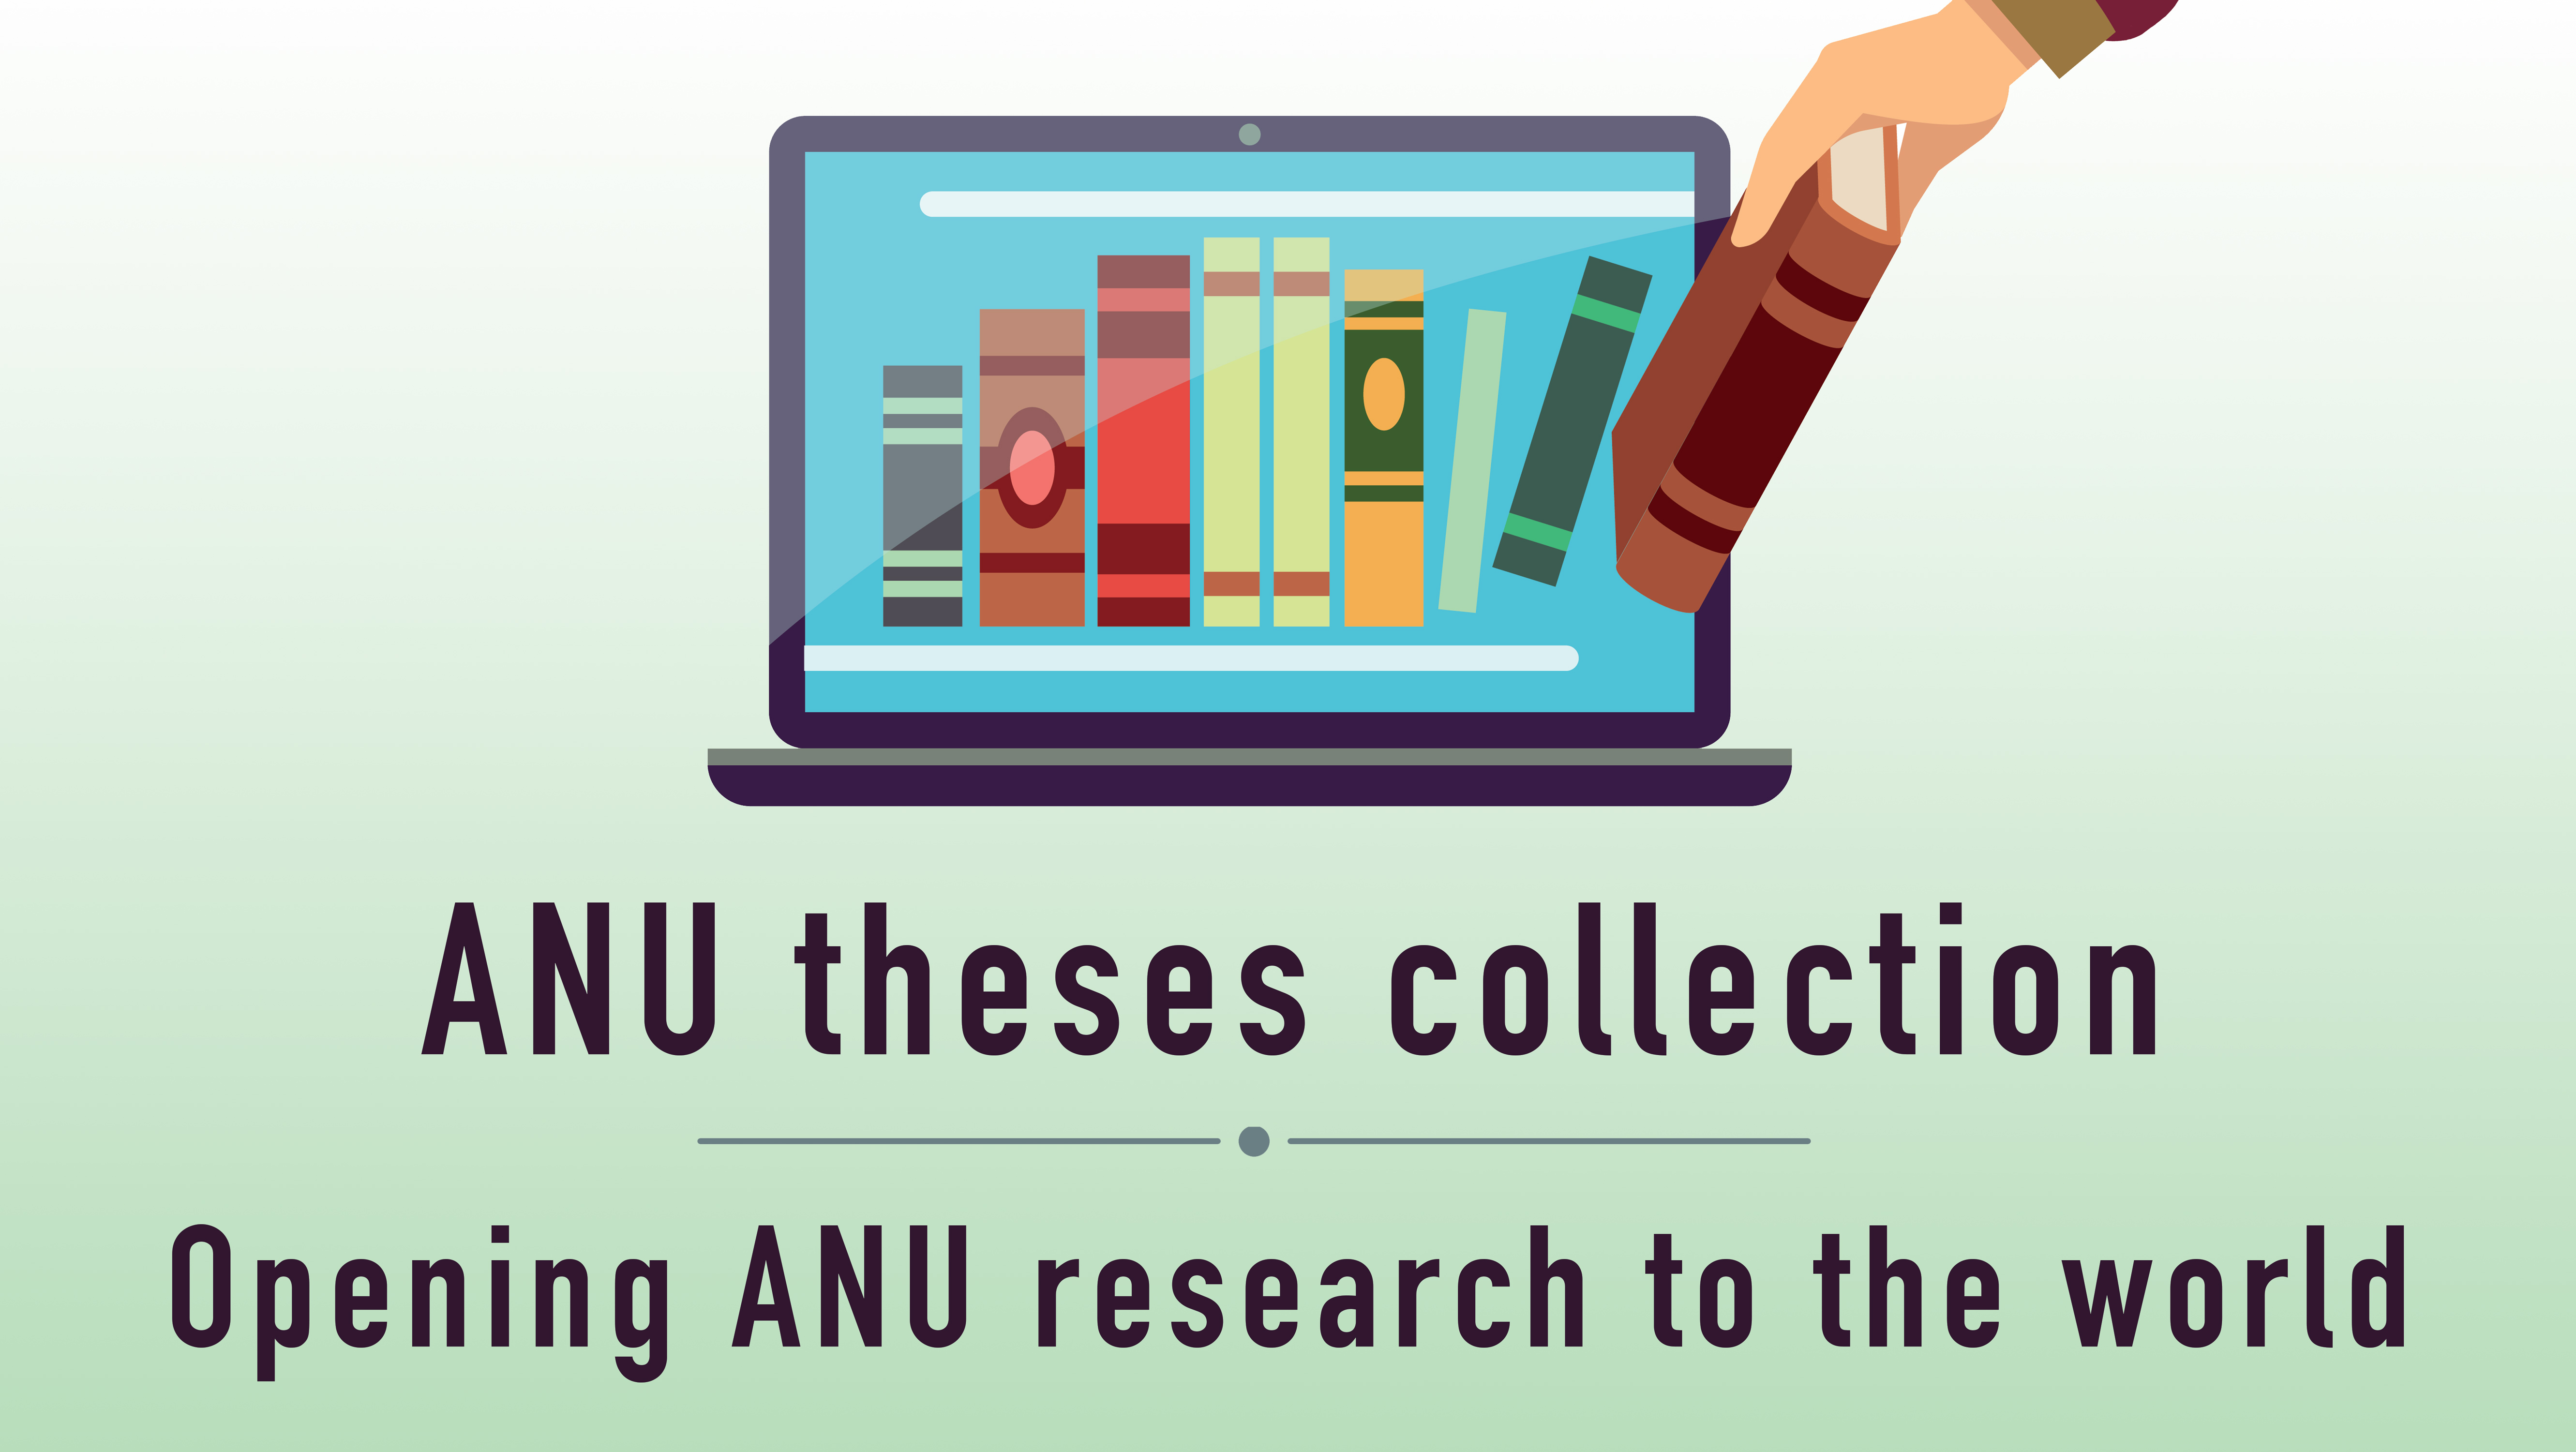 """Image of books on a laptop screen - text reads """"ANU theses collection - opening ANU research to the world"""""""